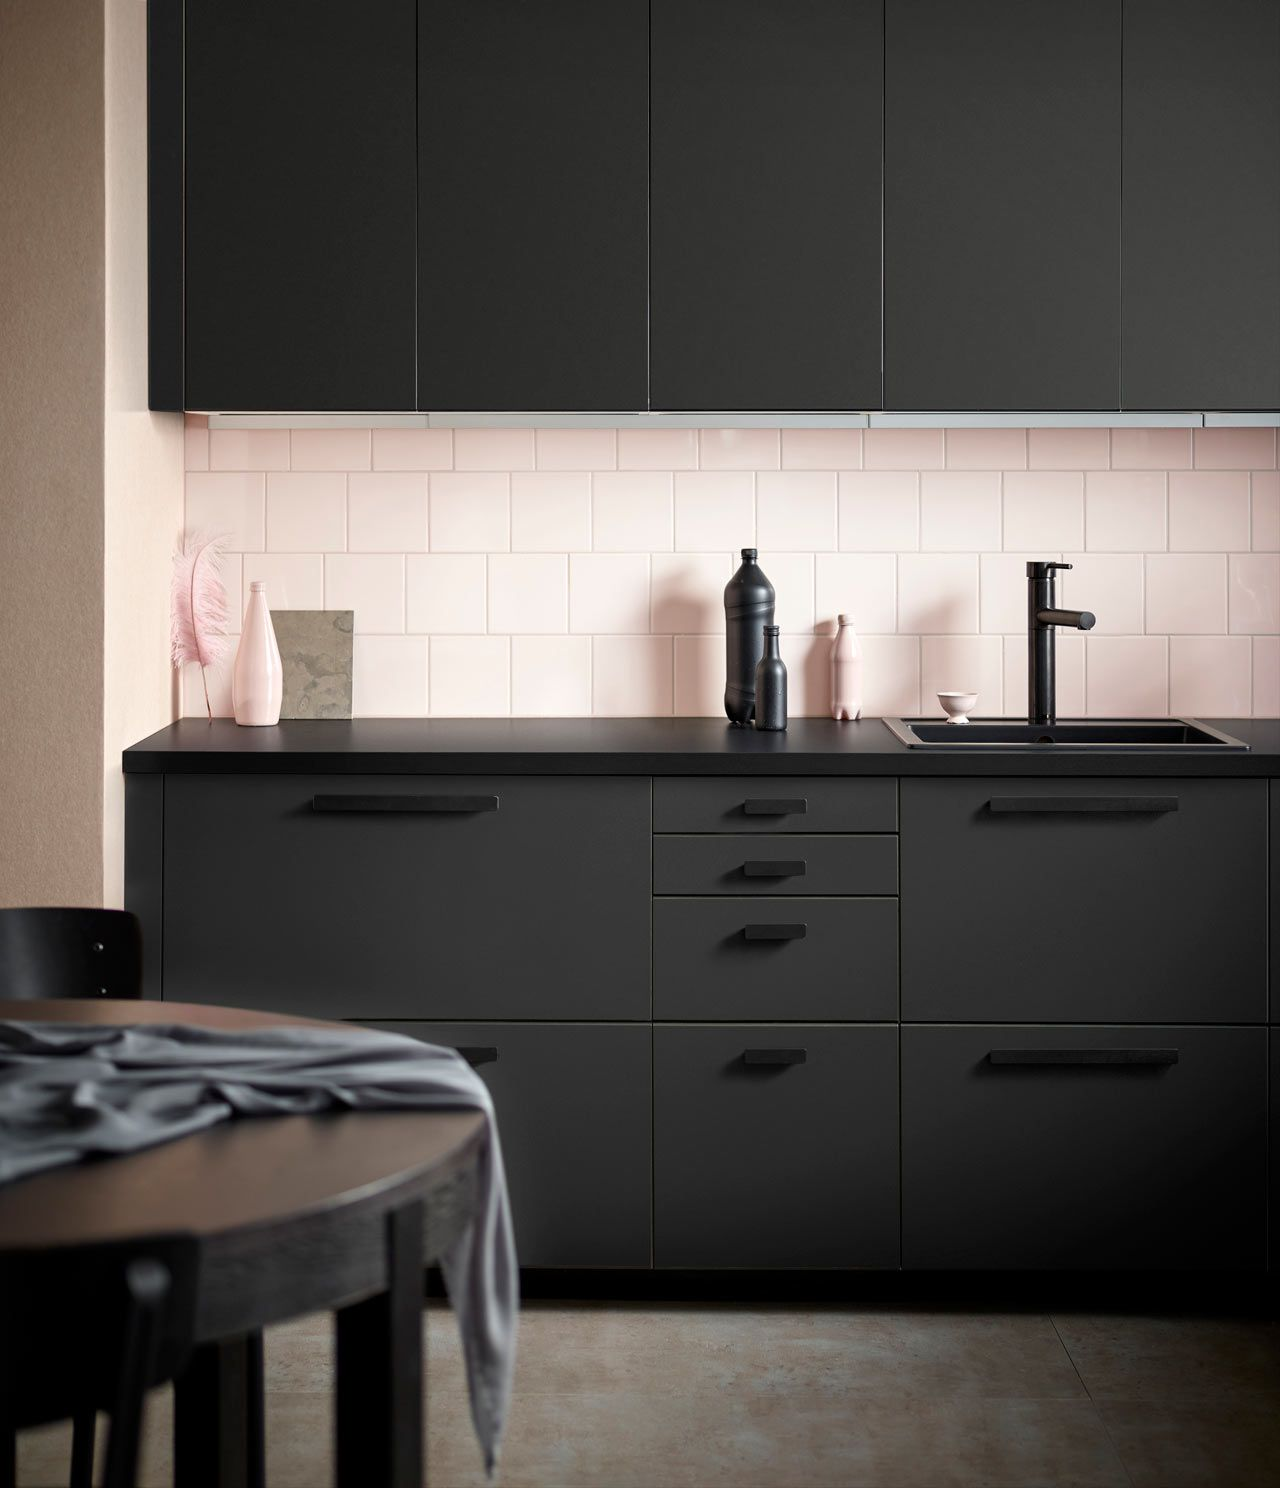 Form Us With Love Collaborated With Ikea To Create The Kungsbacka Line Of Kitchen Fronts Made Entir Recycled Kitchen Sustainable Kitchen Black Kitchen Cabinets